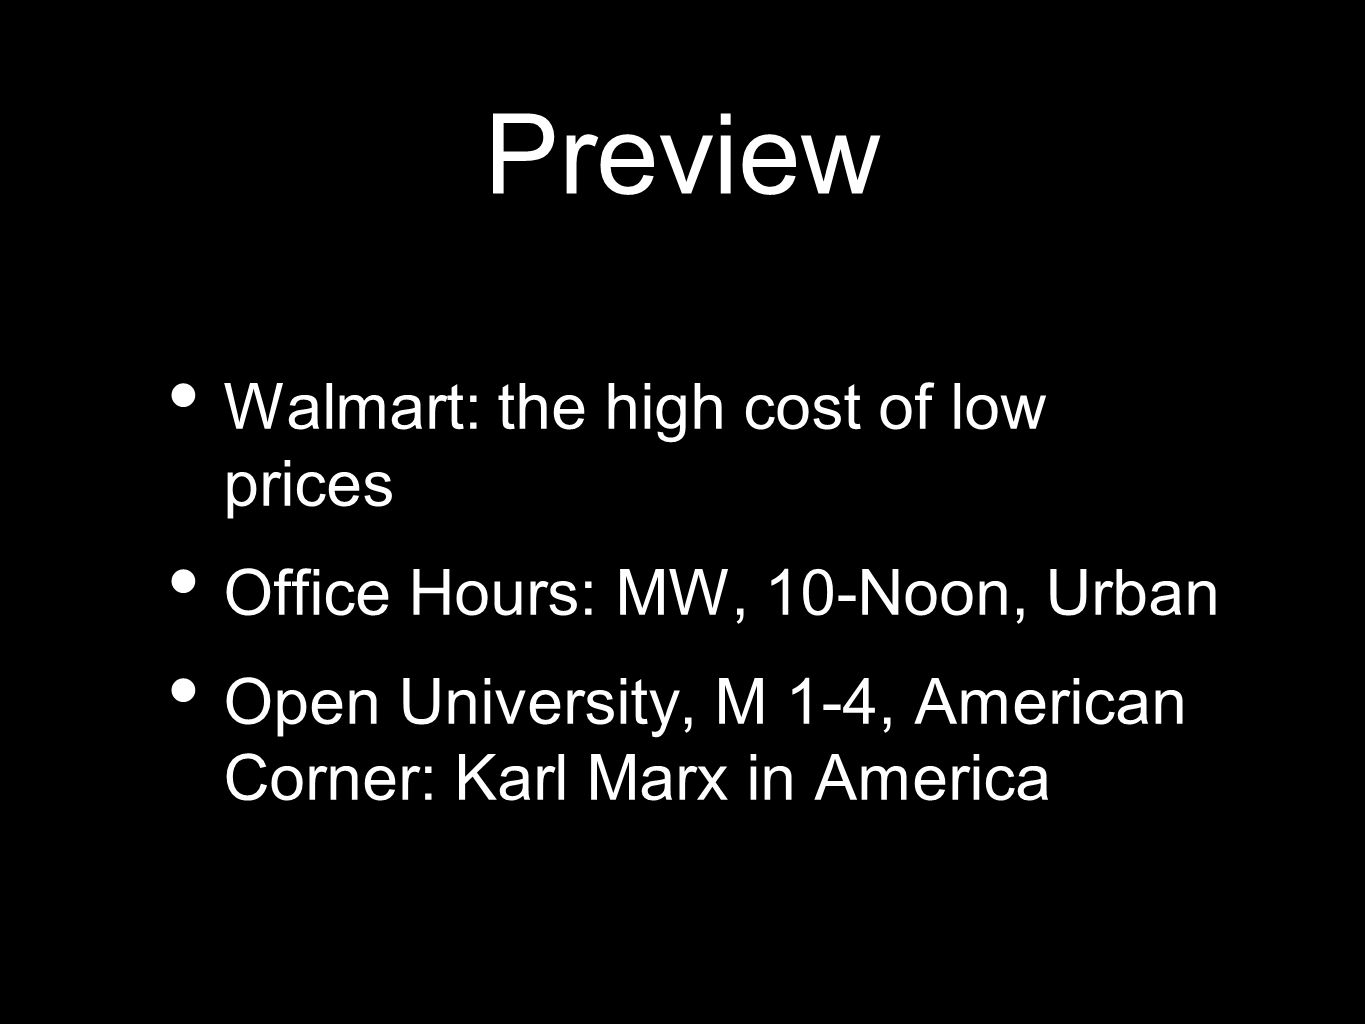 Preview Walmart: the high cost of low prices Office Hours: MW, 10-Noon, Urban Open University, M 1-4, American Corner: Karl Marx in America